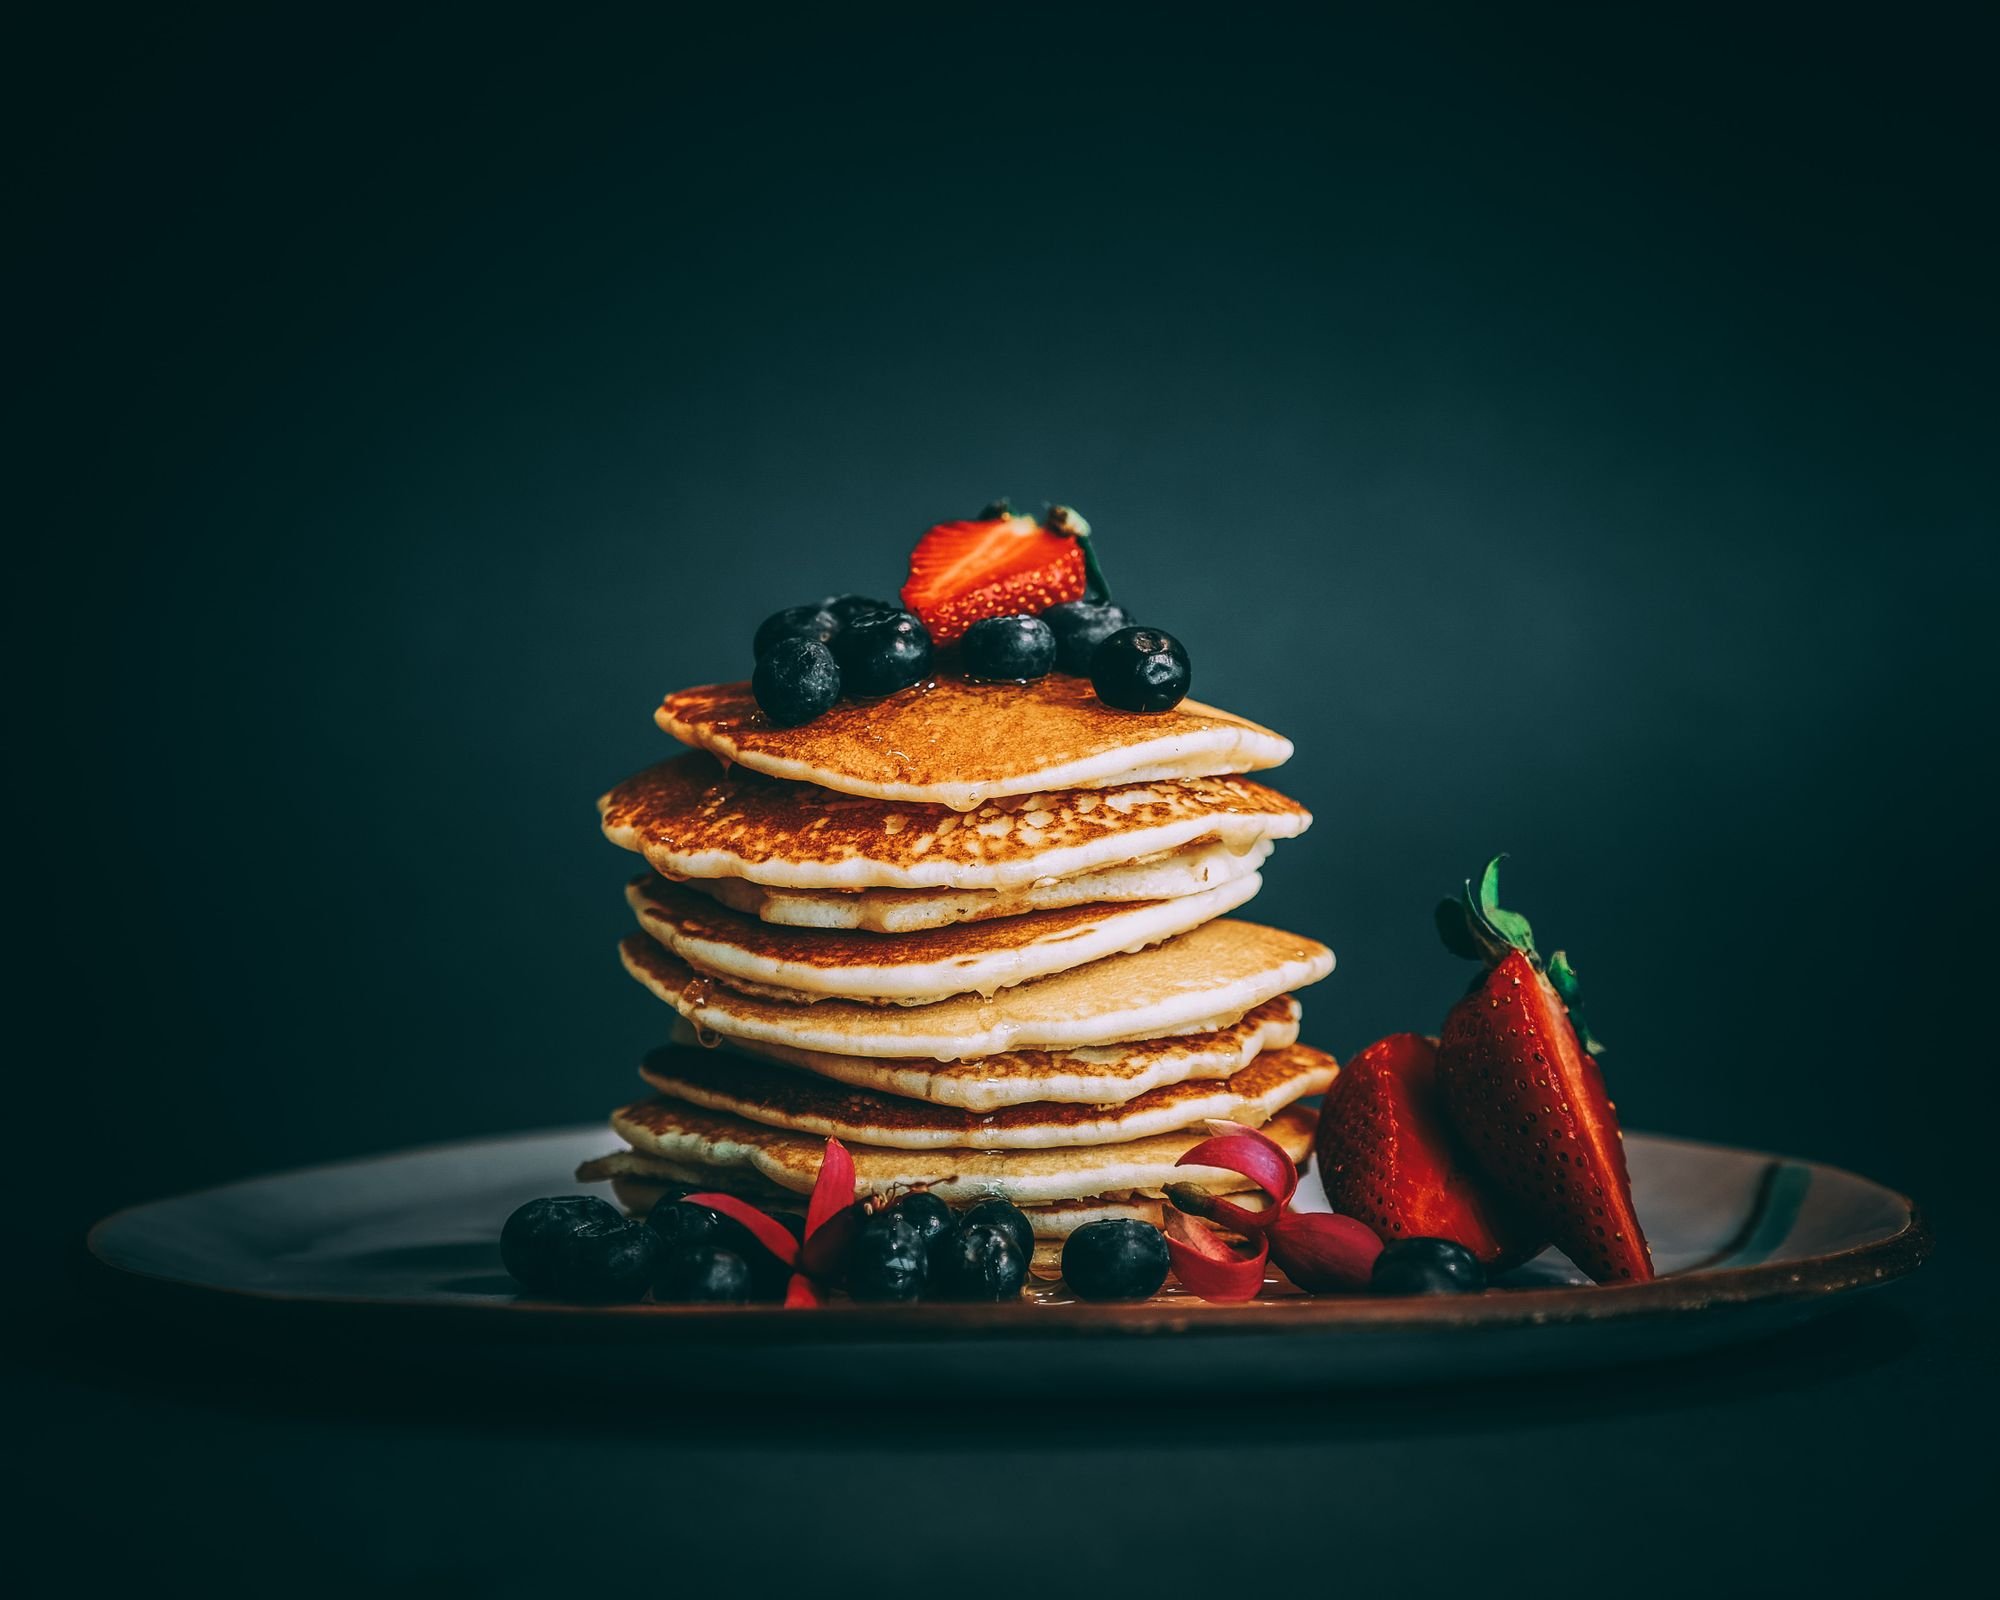 Pancakes with blueberries and strawberries